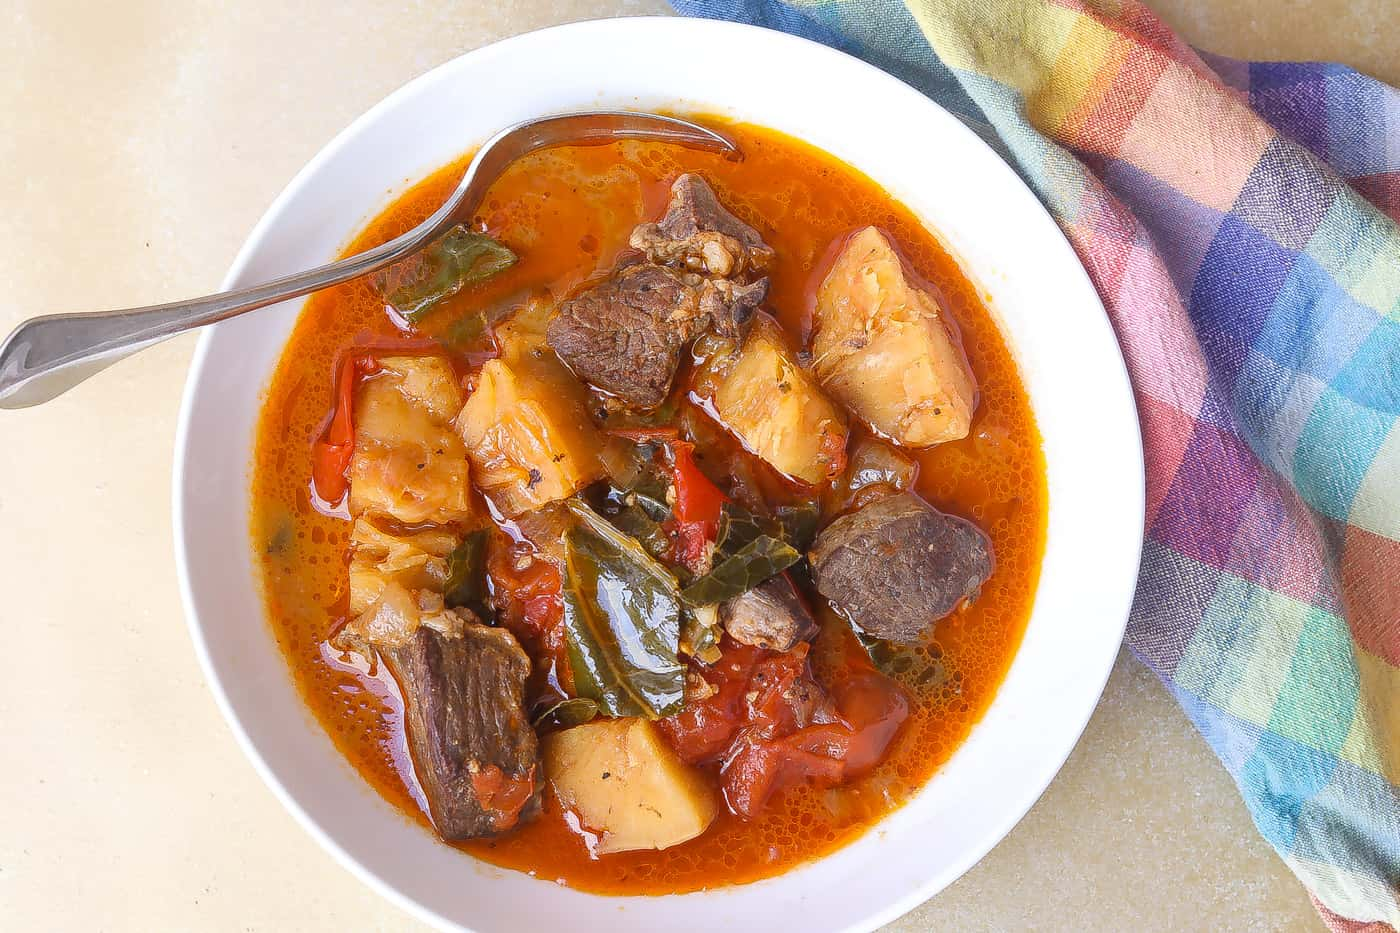 beef soup and vegetables in a white bowl